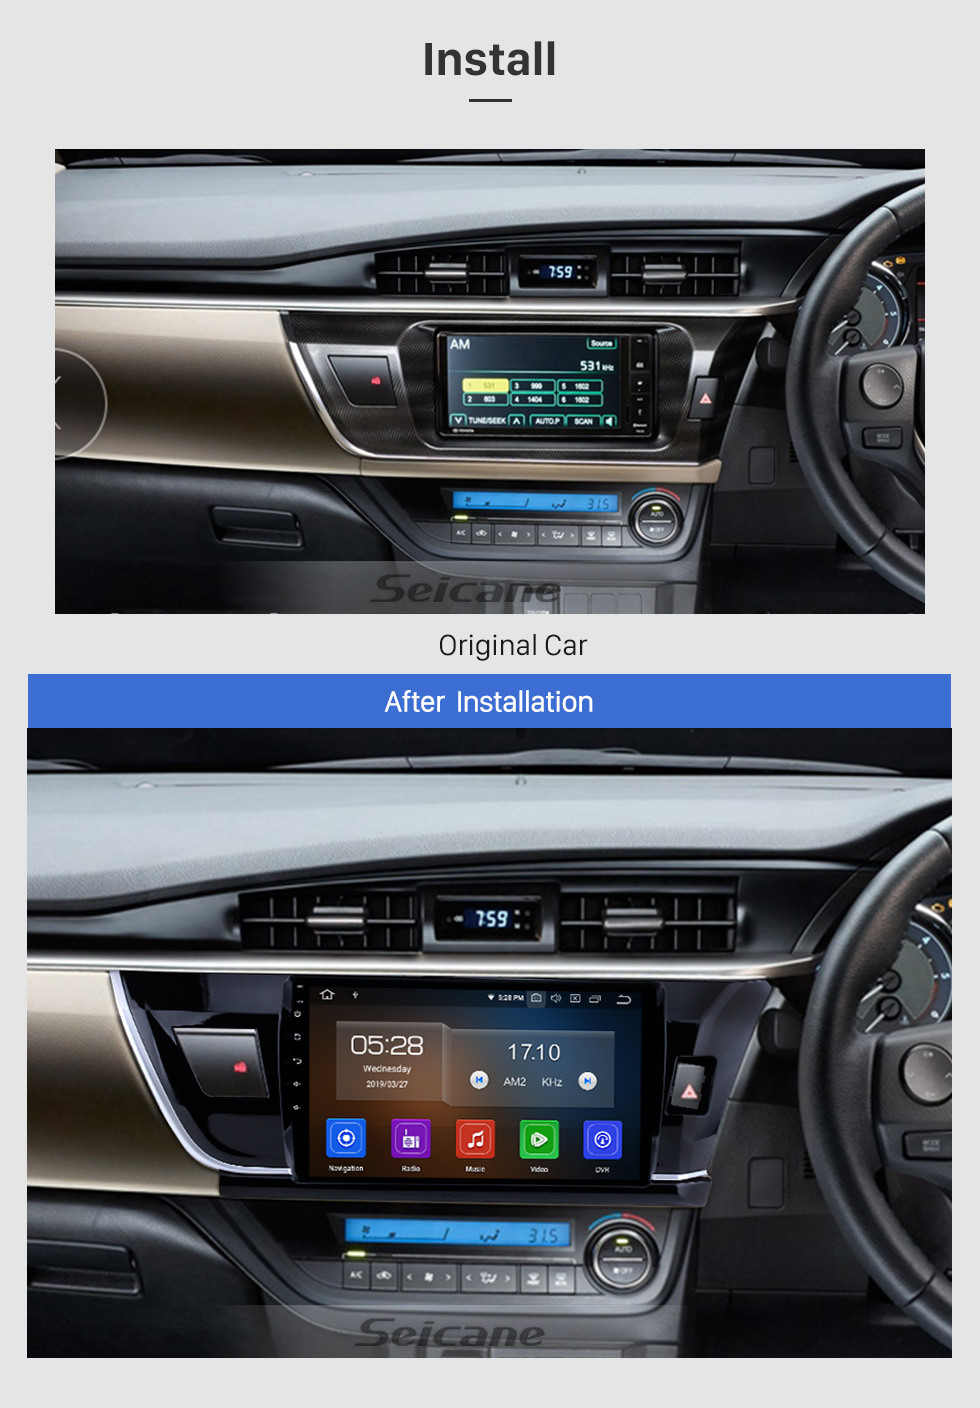 Seicane 10.1 inch Android 10.0 HD touch screen car multimedia GPS navigation system for 2014 Toyota Corolla RHD with Bluetooth Radio Mirror link Rear view camera TV USB OBD DVR 4G WIFI